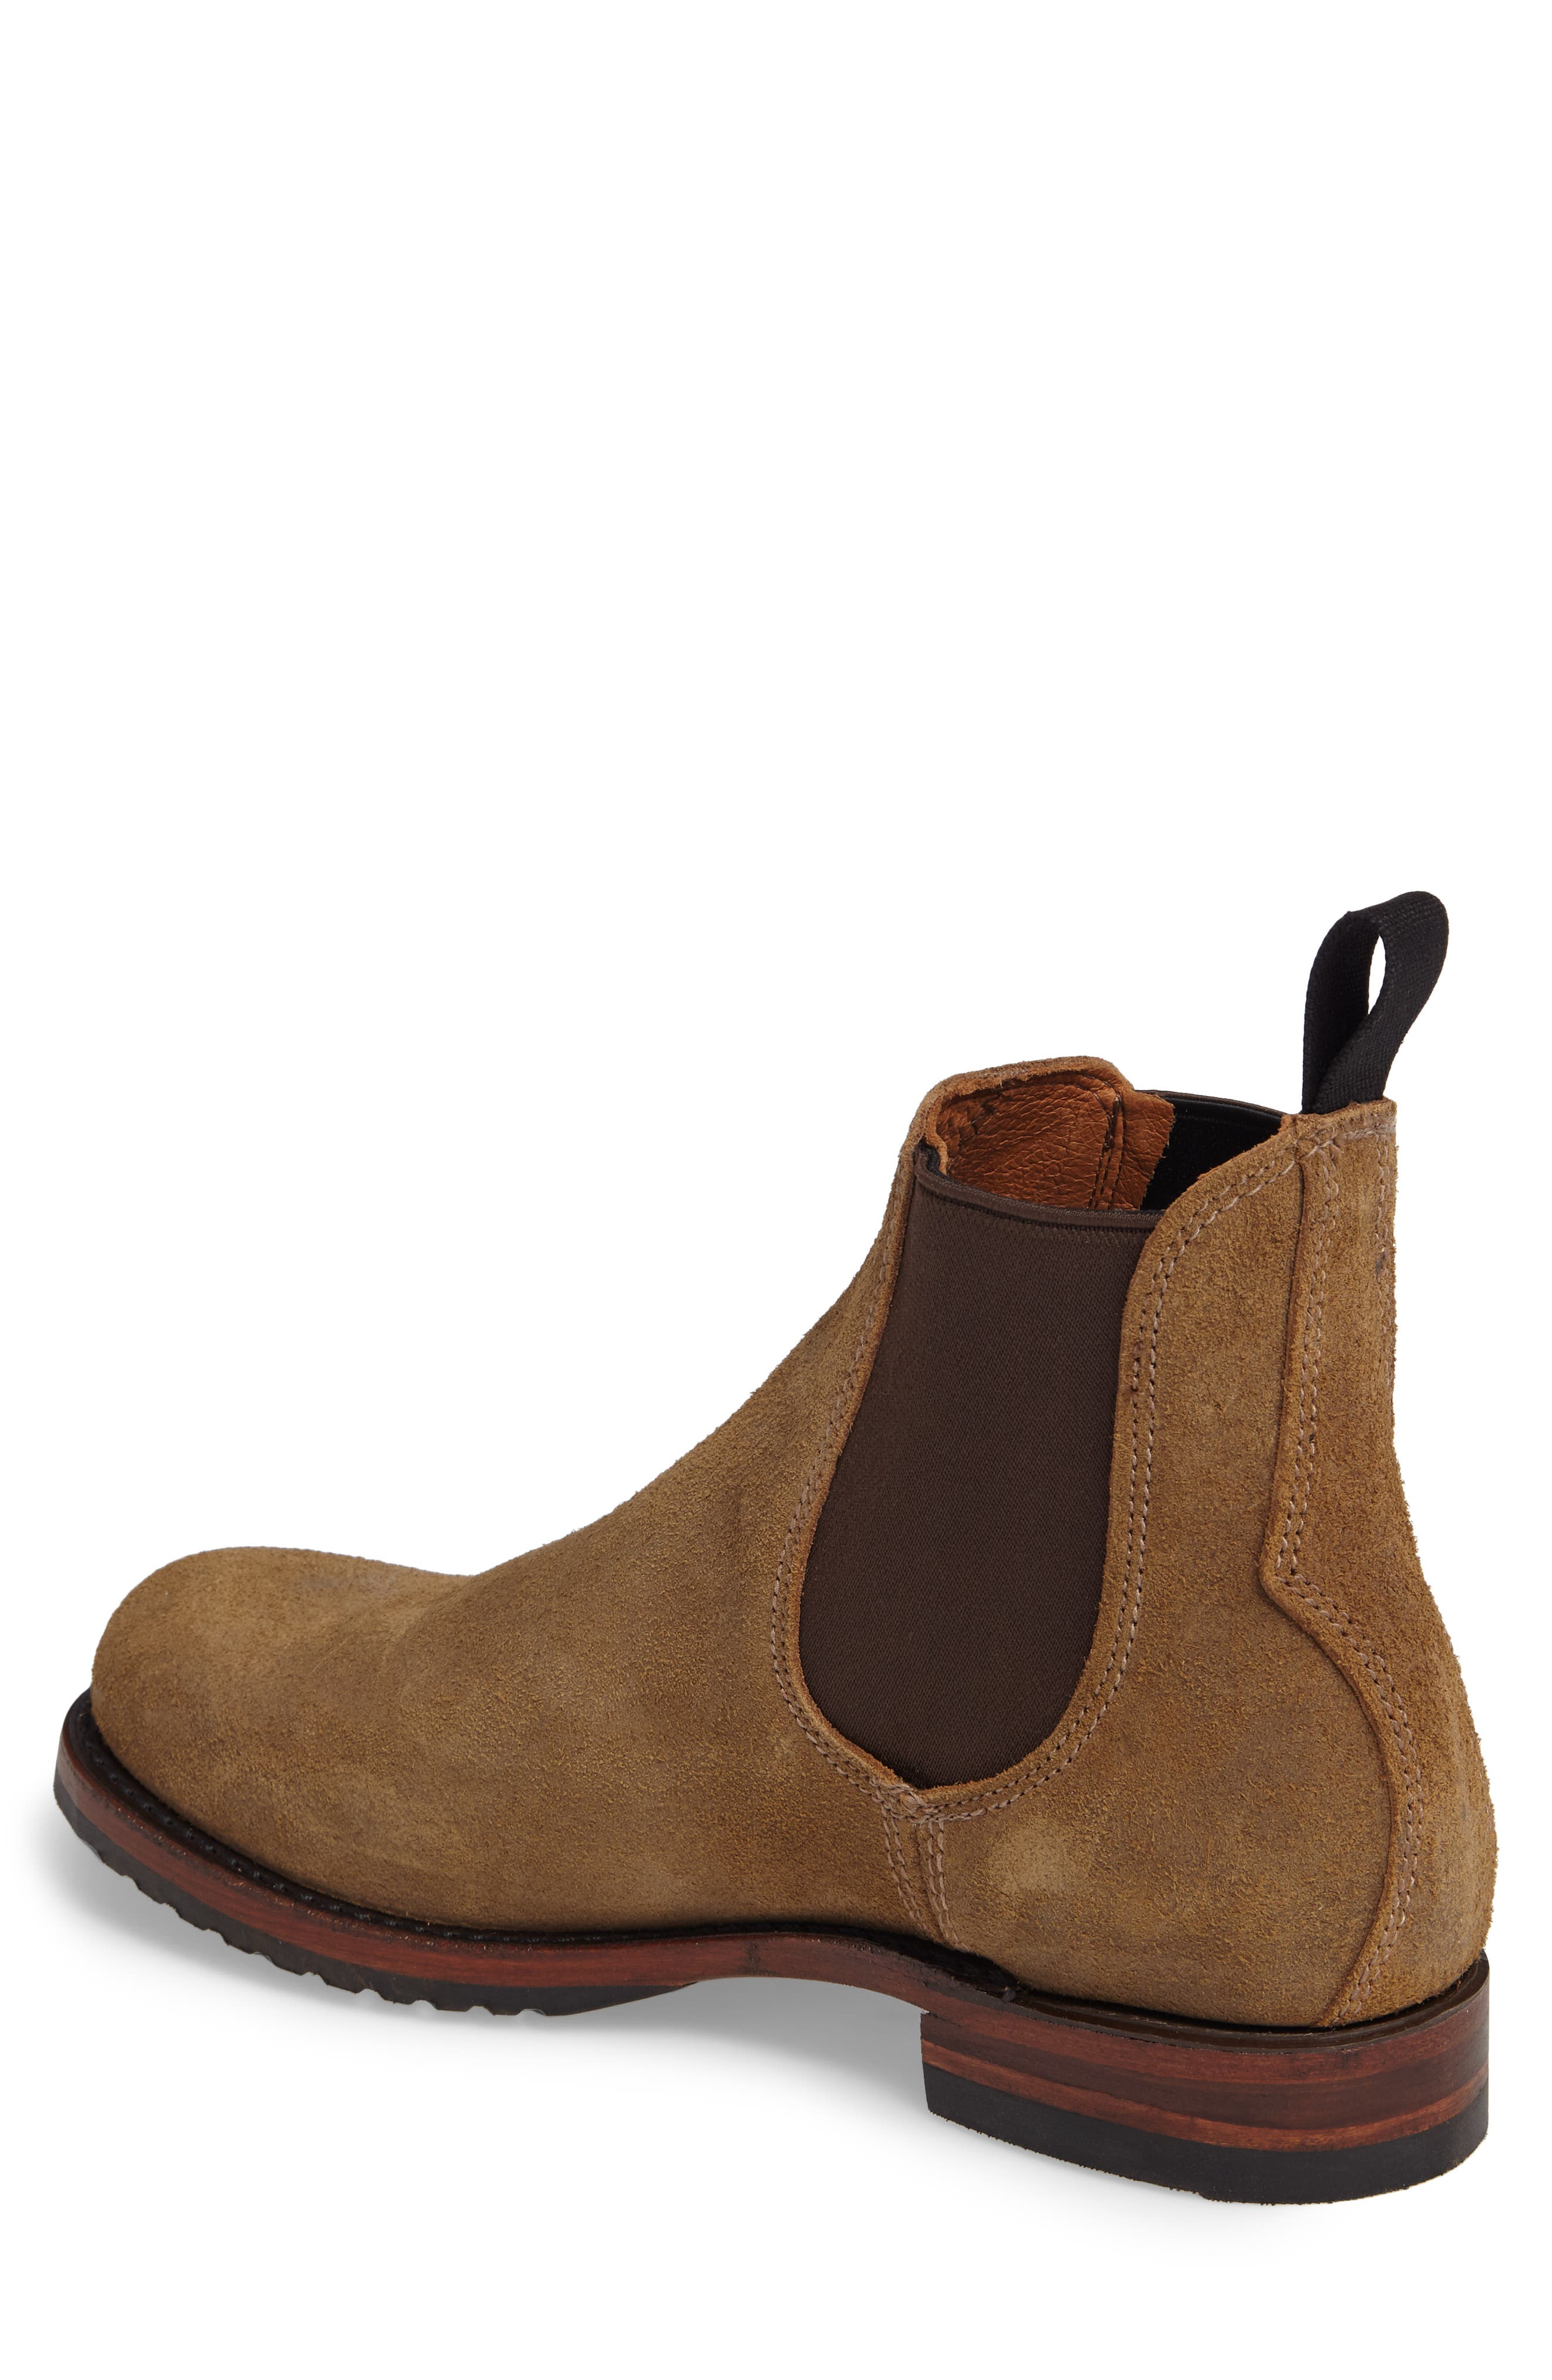 Logan Chelsea Boot,                             Alternate thumbnail 2, color,                             Chestnut Waxed Suede